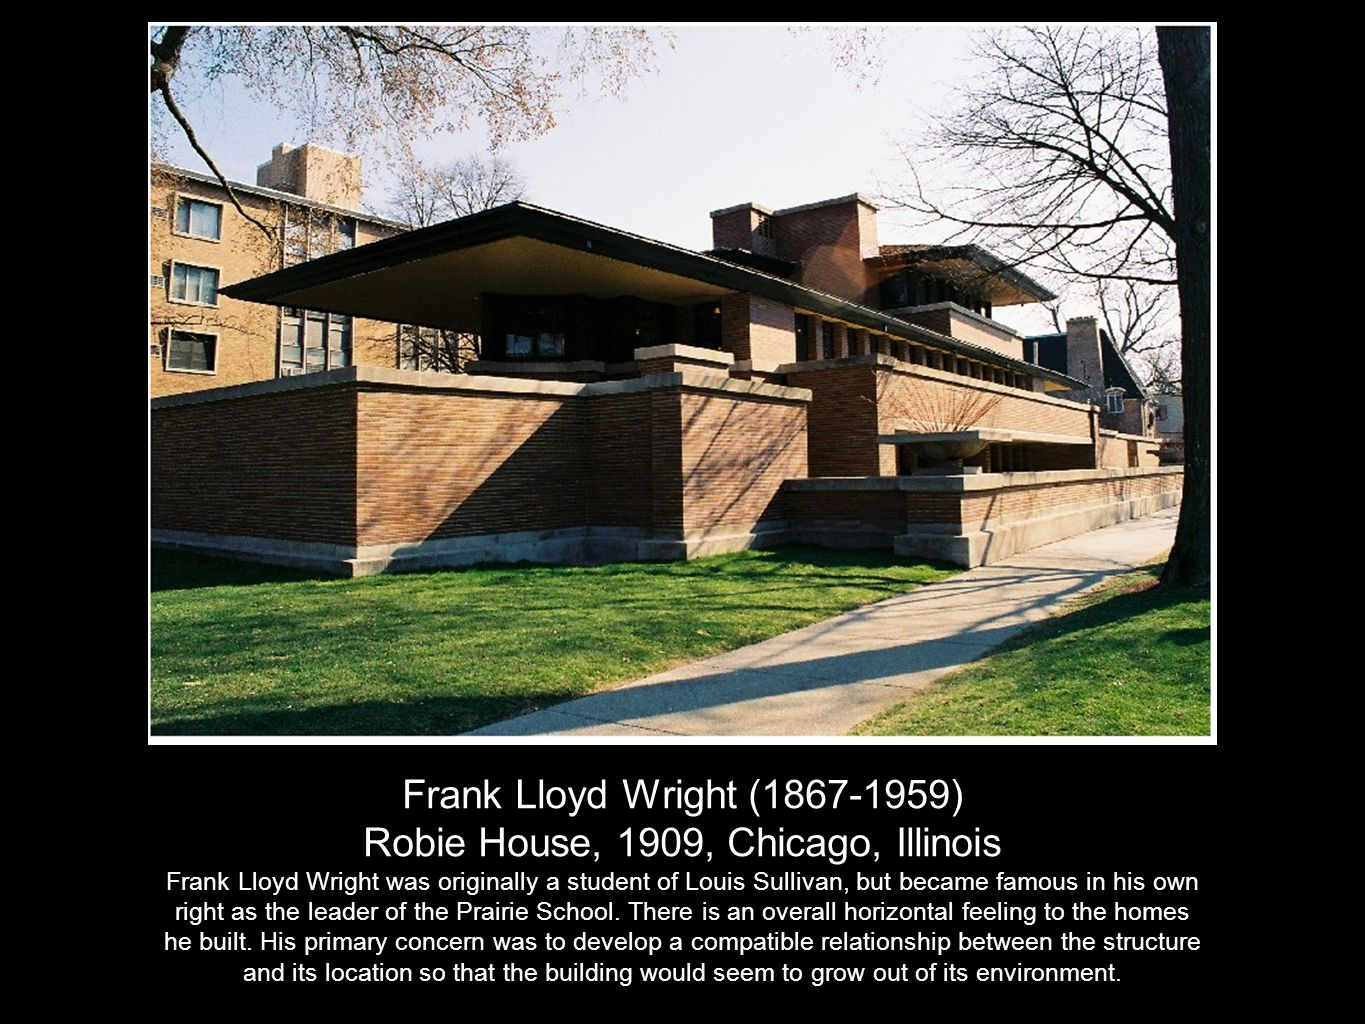 Frank Lloyd Wright (1867-1959) Robie House, 1909, Chicago, Illinois Frank Lloyd Wright was originally a student of Louis Sullivan, but became famous in his own right as the leader of the Prairie School.